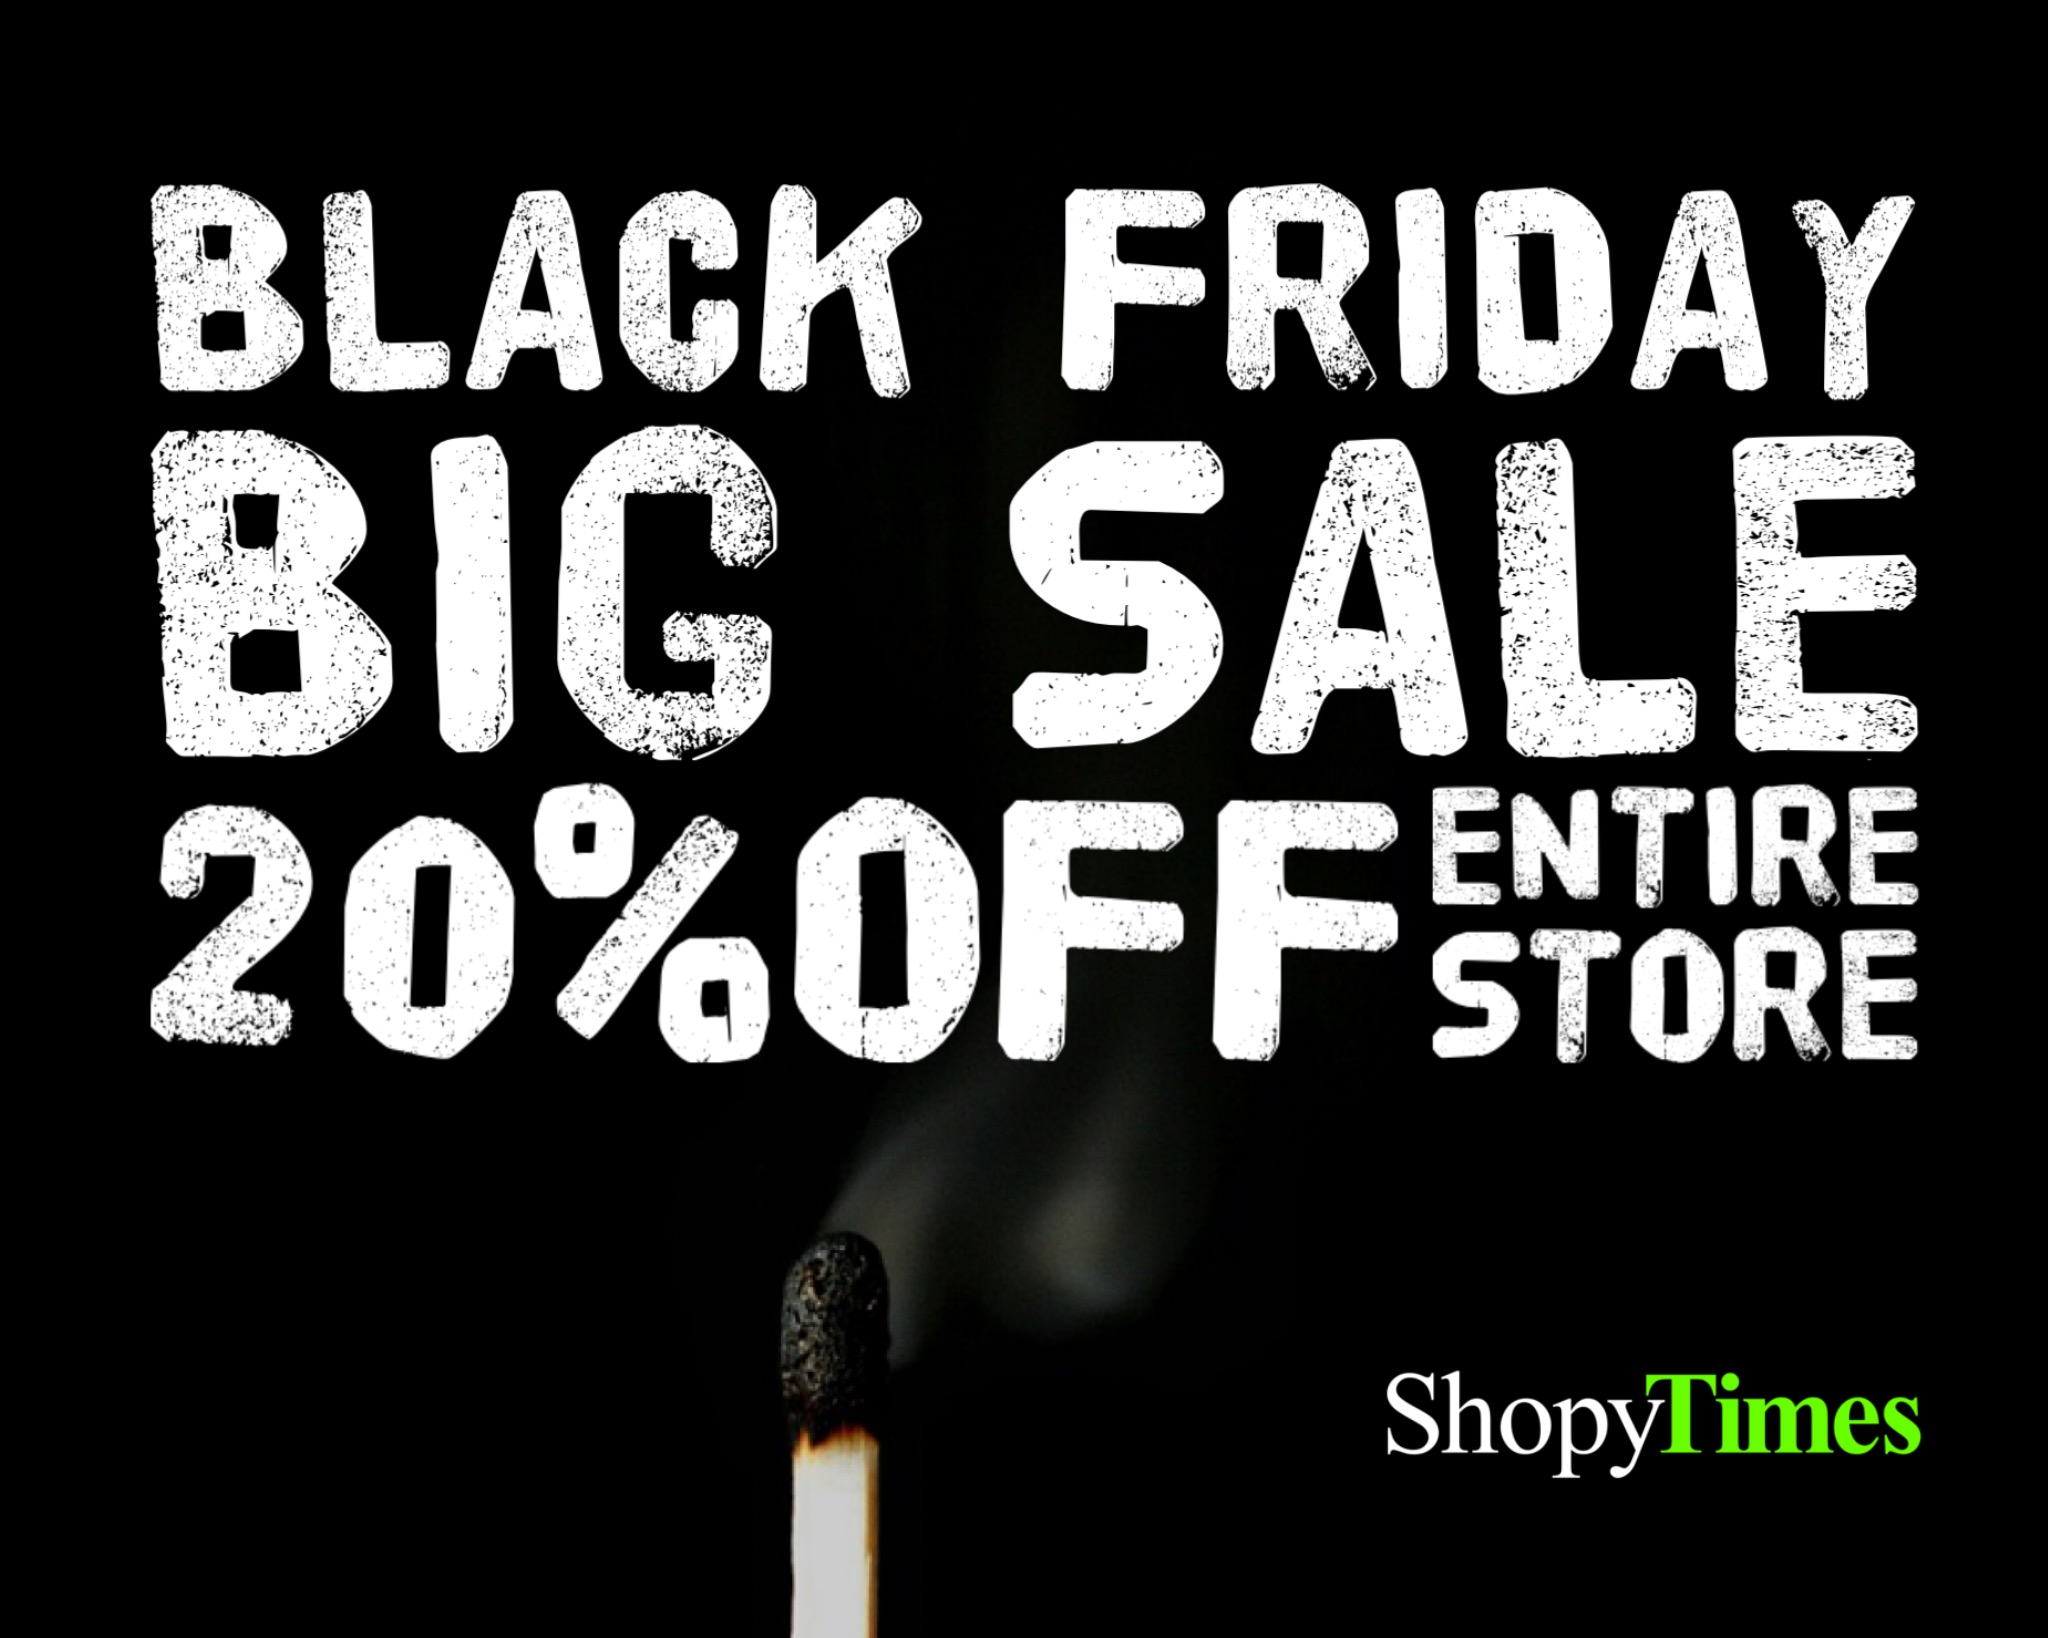 Shopytimes | Black Friday